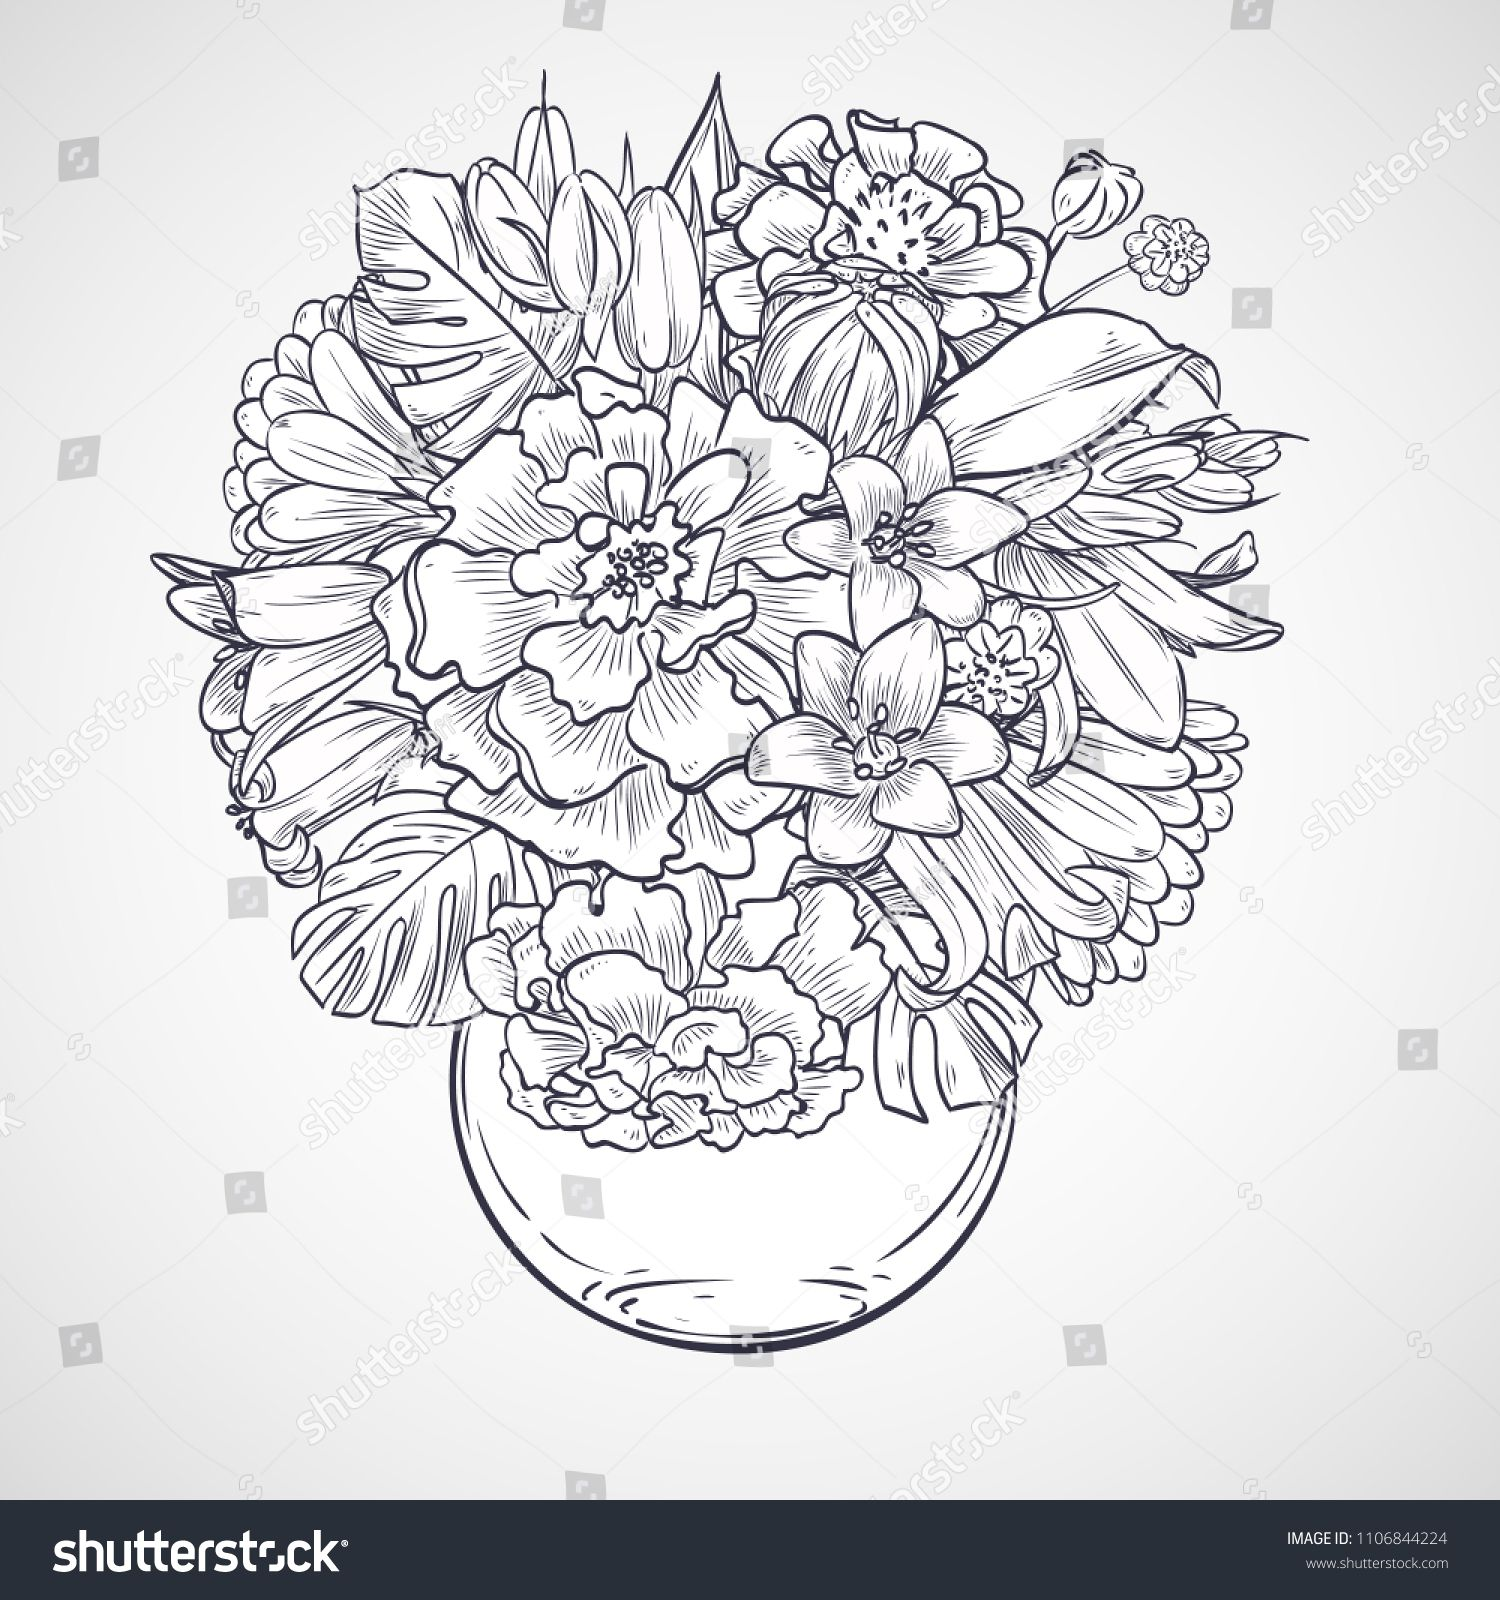 Pin Op Colouring Pages I D Like To Colour